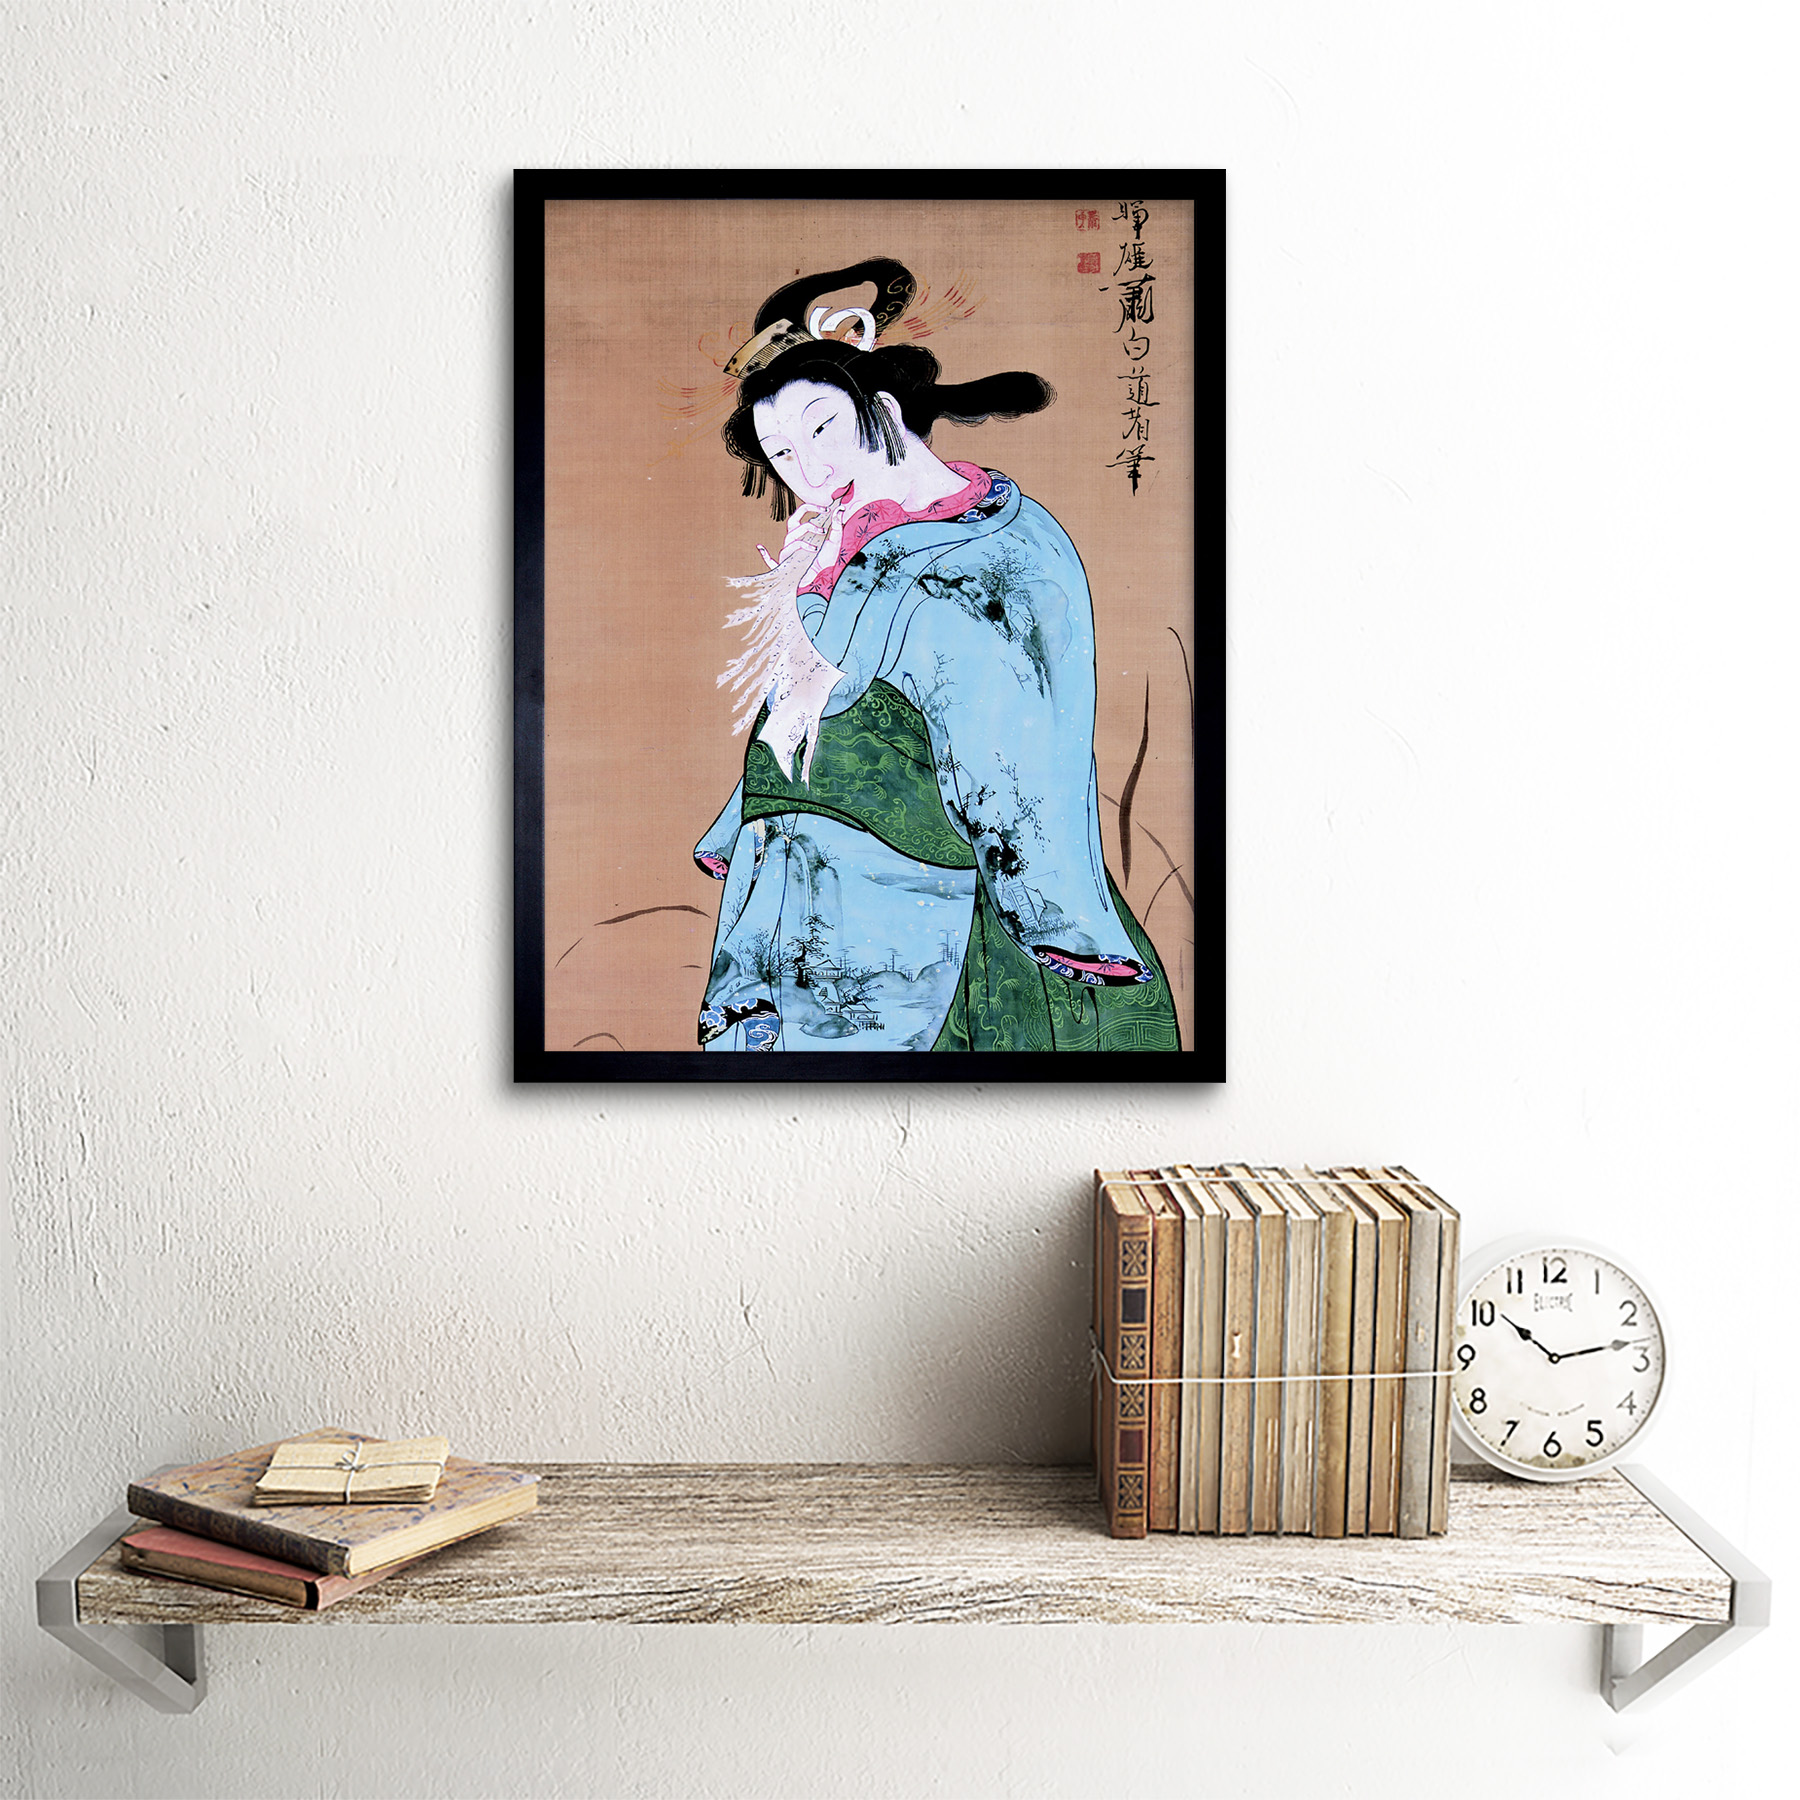 Shohaku Japanese Beauty Woman Painting Wall Art Print Framed 12x16